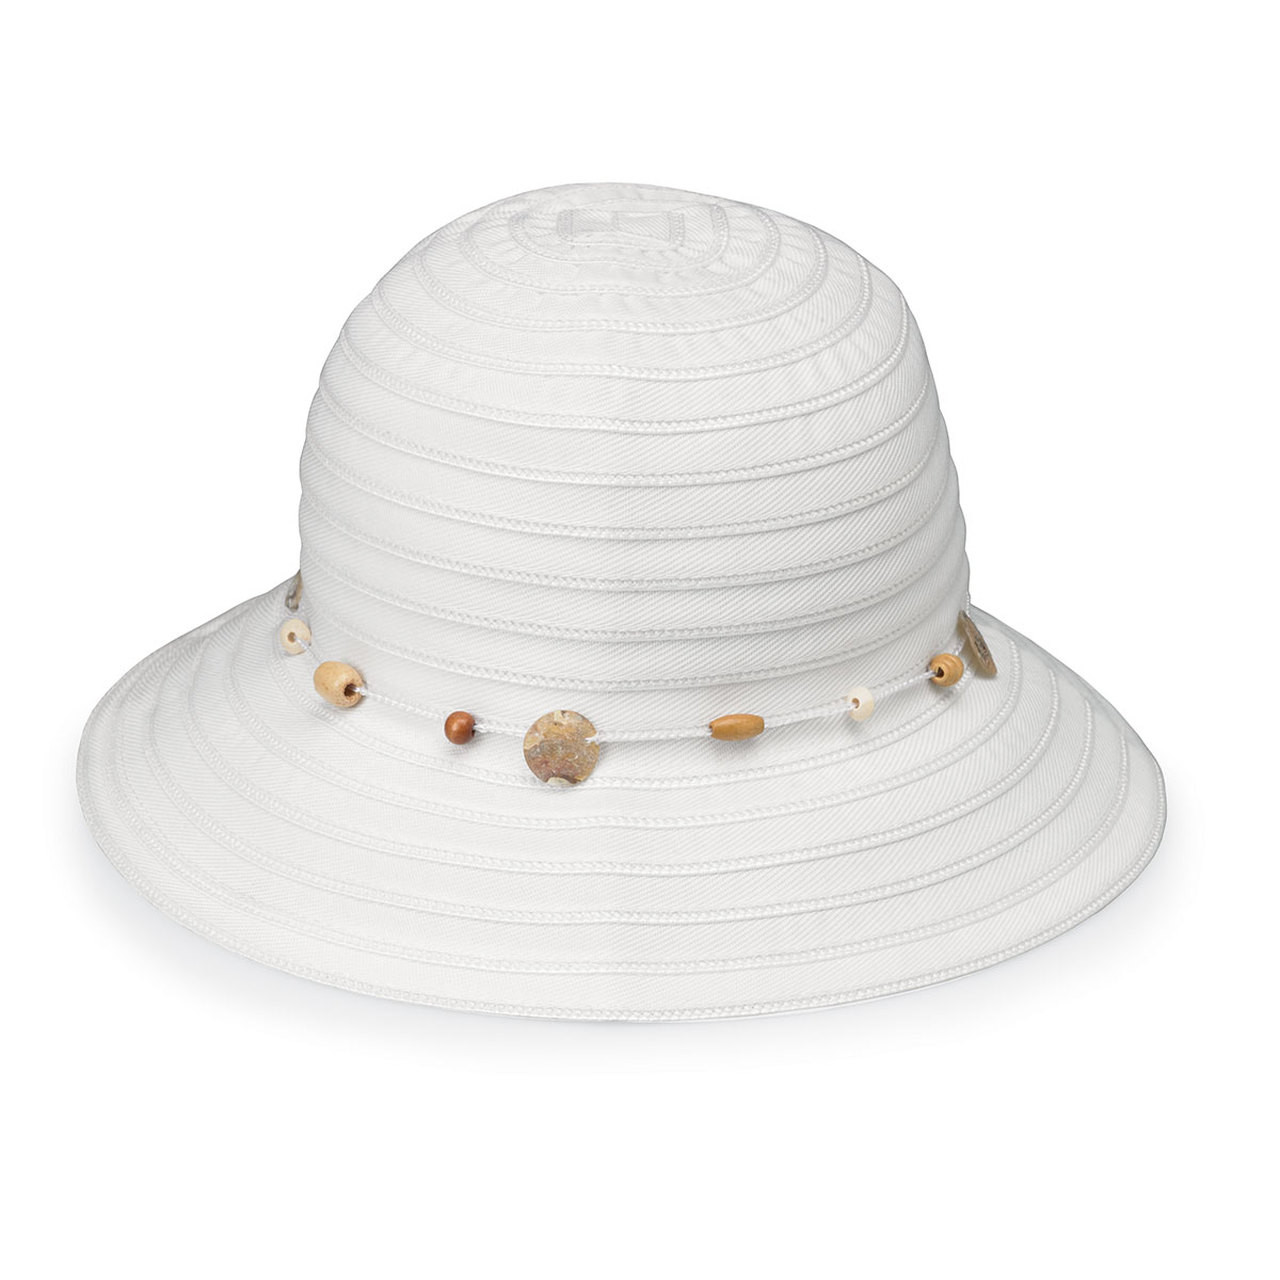 0232e7c8a White · Black · Wallaroo Ellie Sun Hat ...